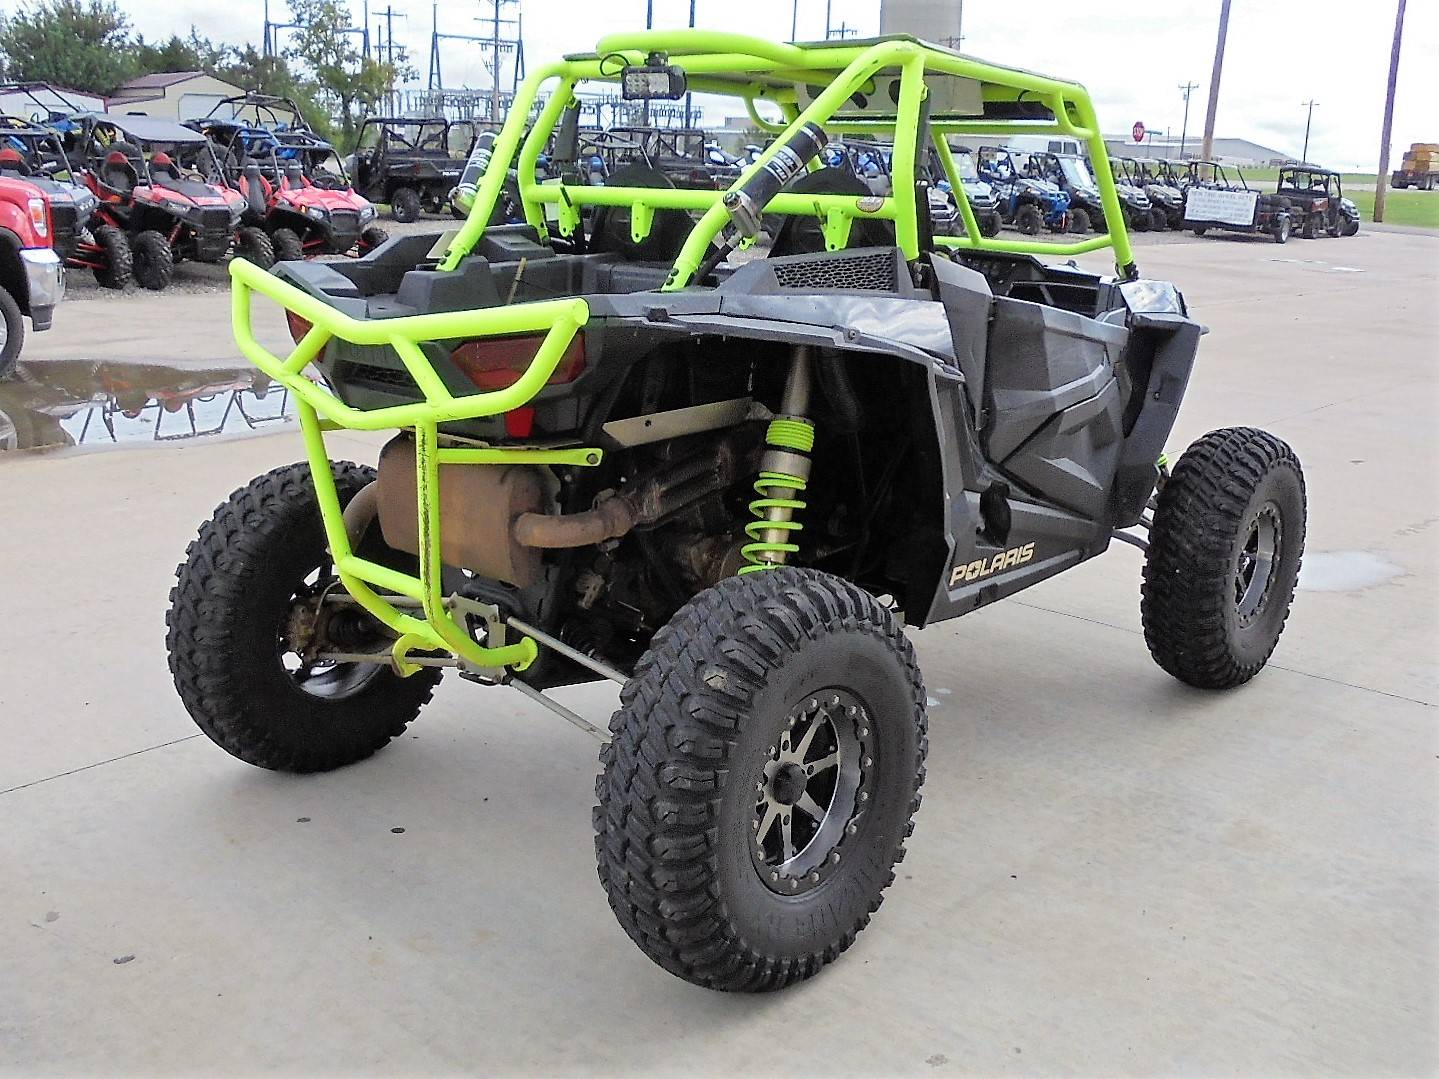 2014 Polaris RZR XP 1000 EPS 4